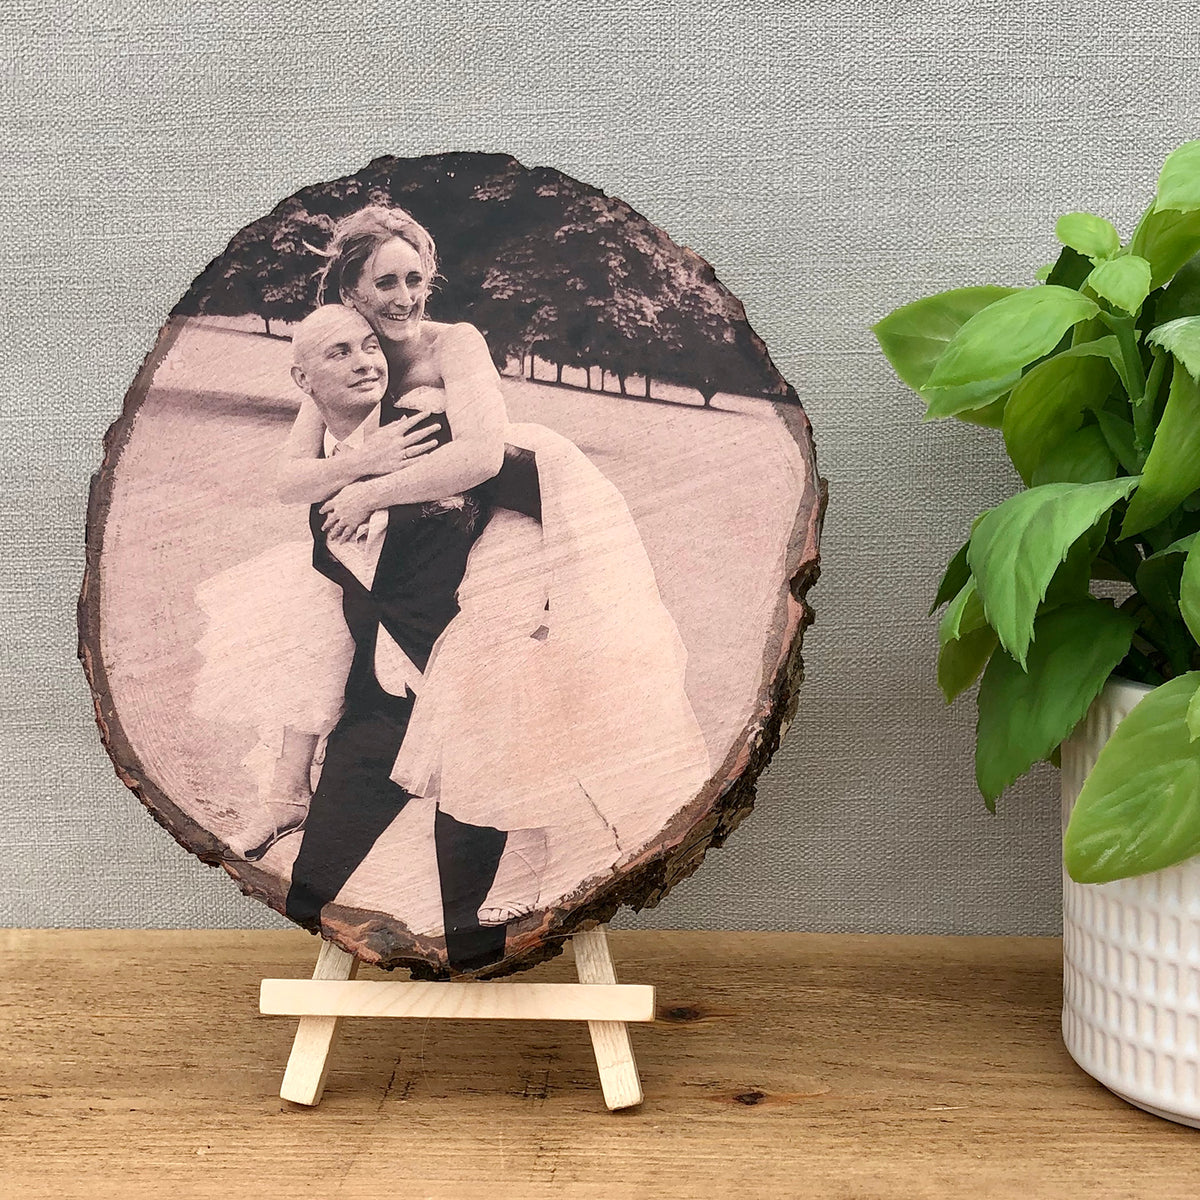 A large wood slice photo plaque showing a bride and groom on their wedding day